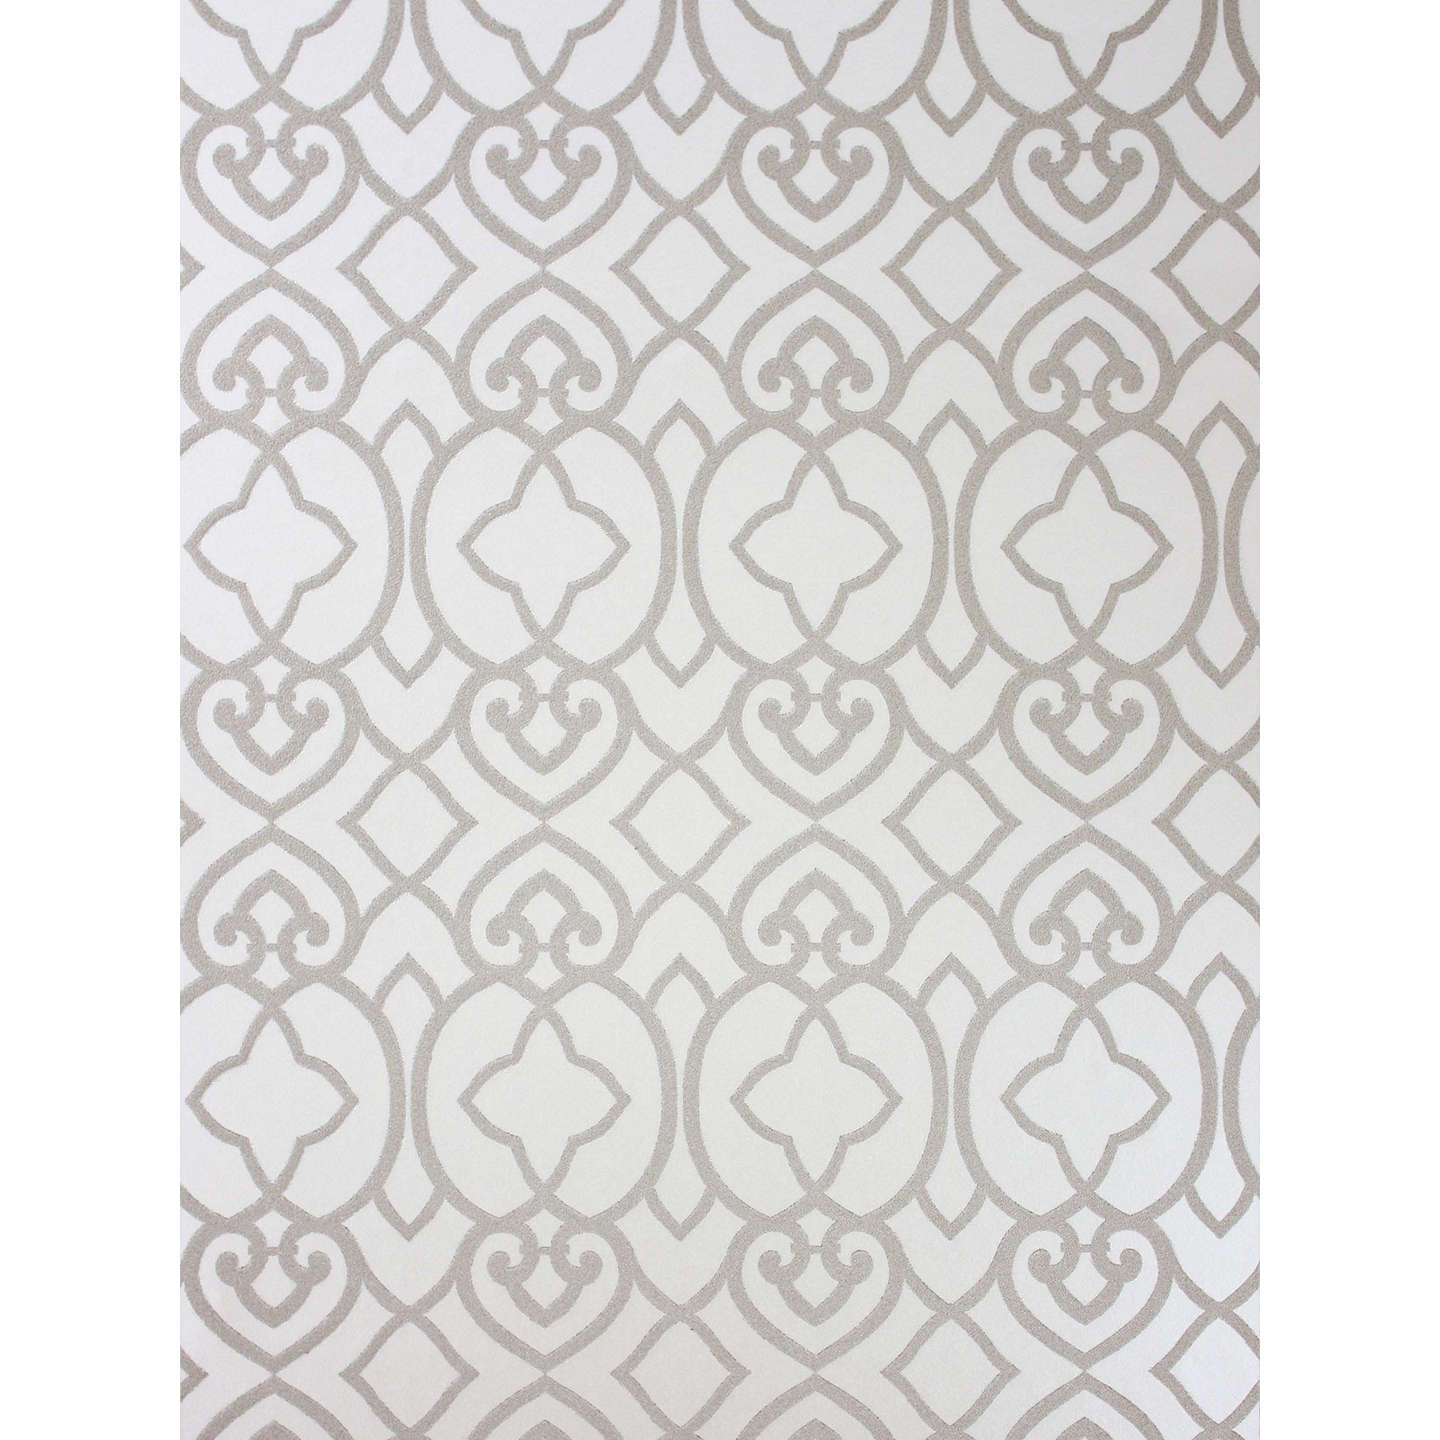 BuyMatthew Williamson Imperial Lattice Wallpaper, Ivory / Mica, W6546-01 Online at johnlewis.com